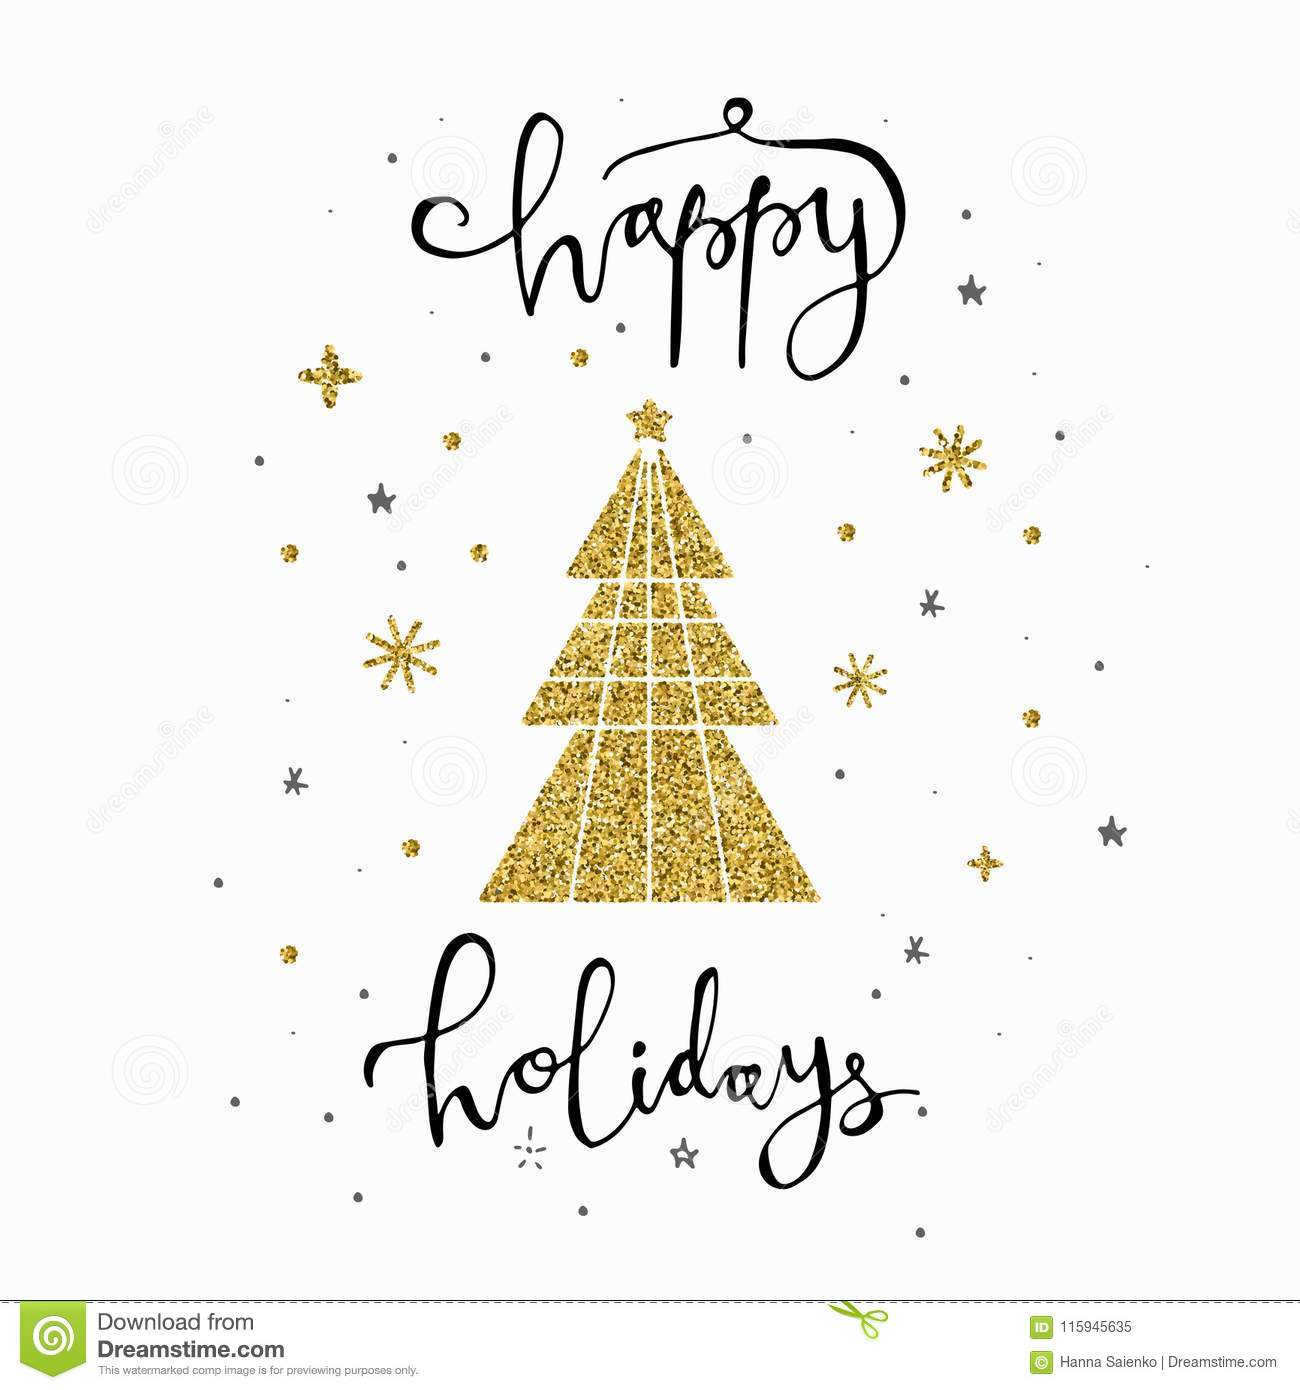 Happy Holidays Calligraphy Phrase With Gold Glitter Tree And ...